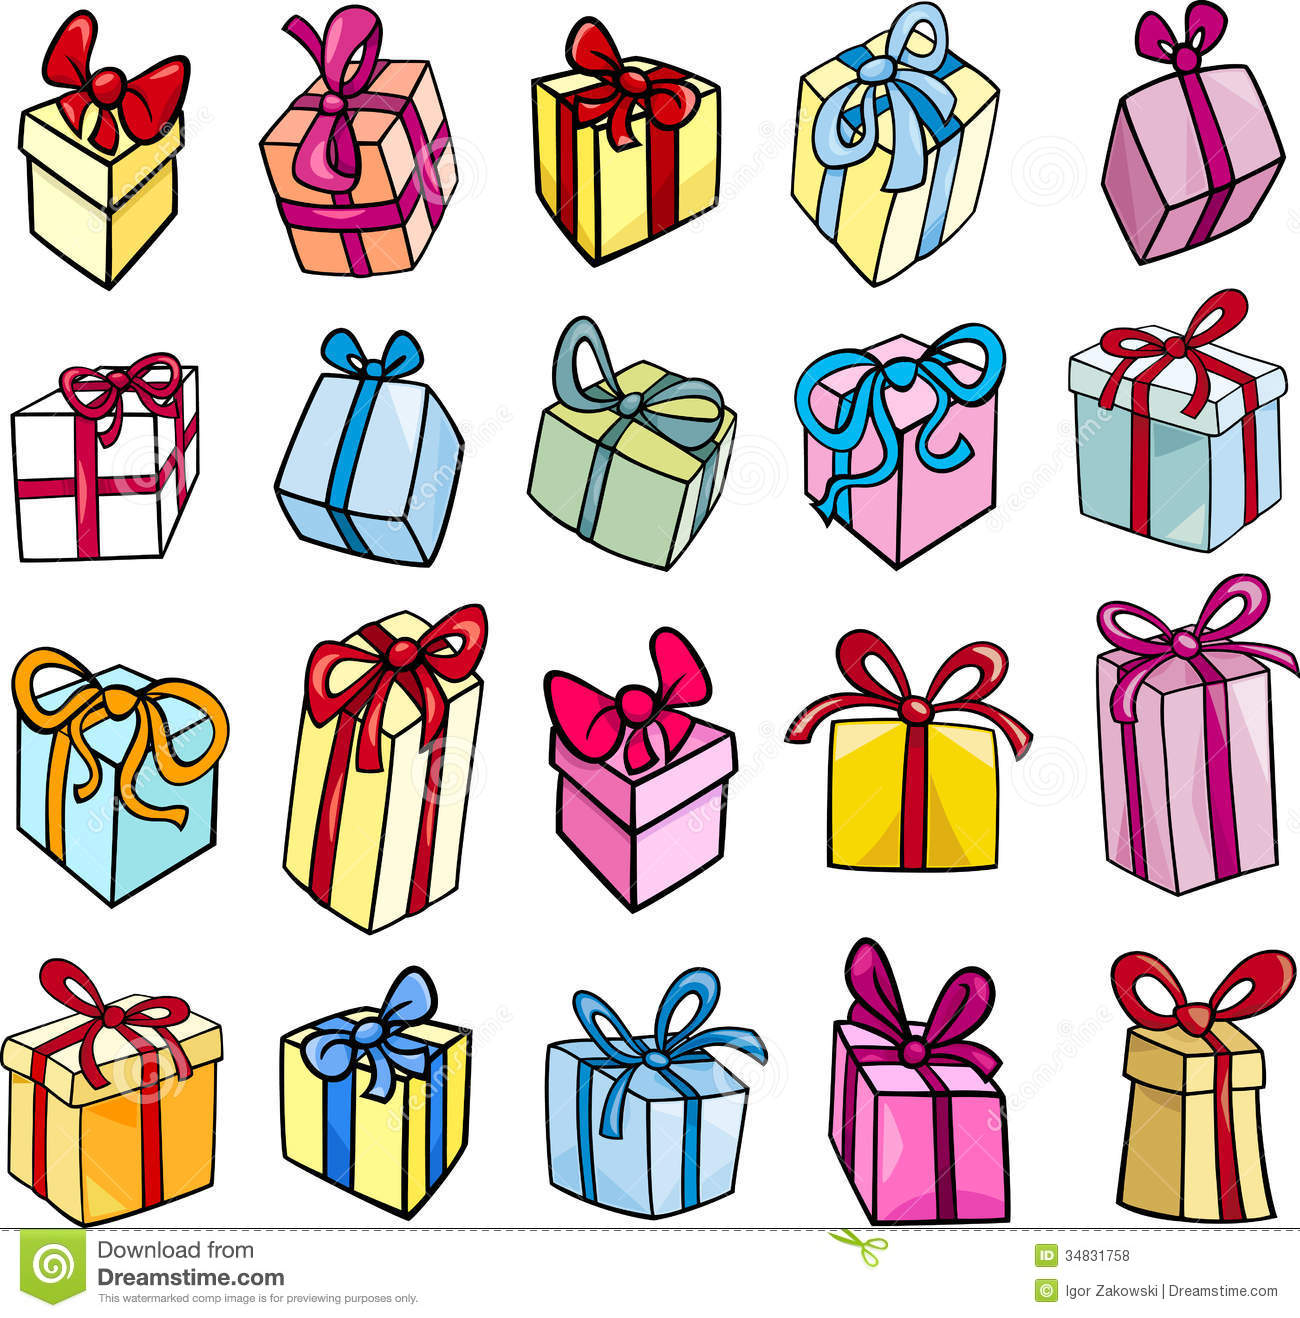 Wedding Gift Clipart Free : commemoration-clipart-christmas-birthday-gift-clip-art-set-cartoon ...